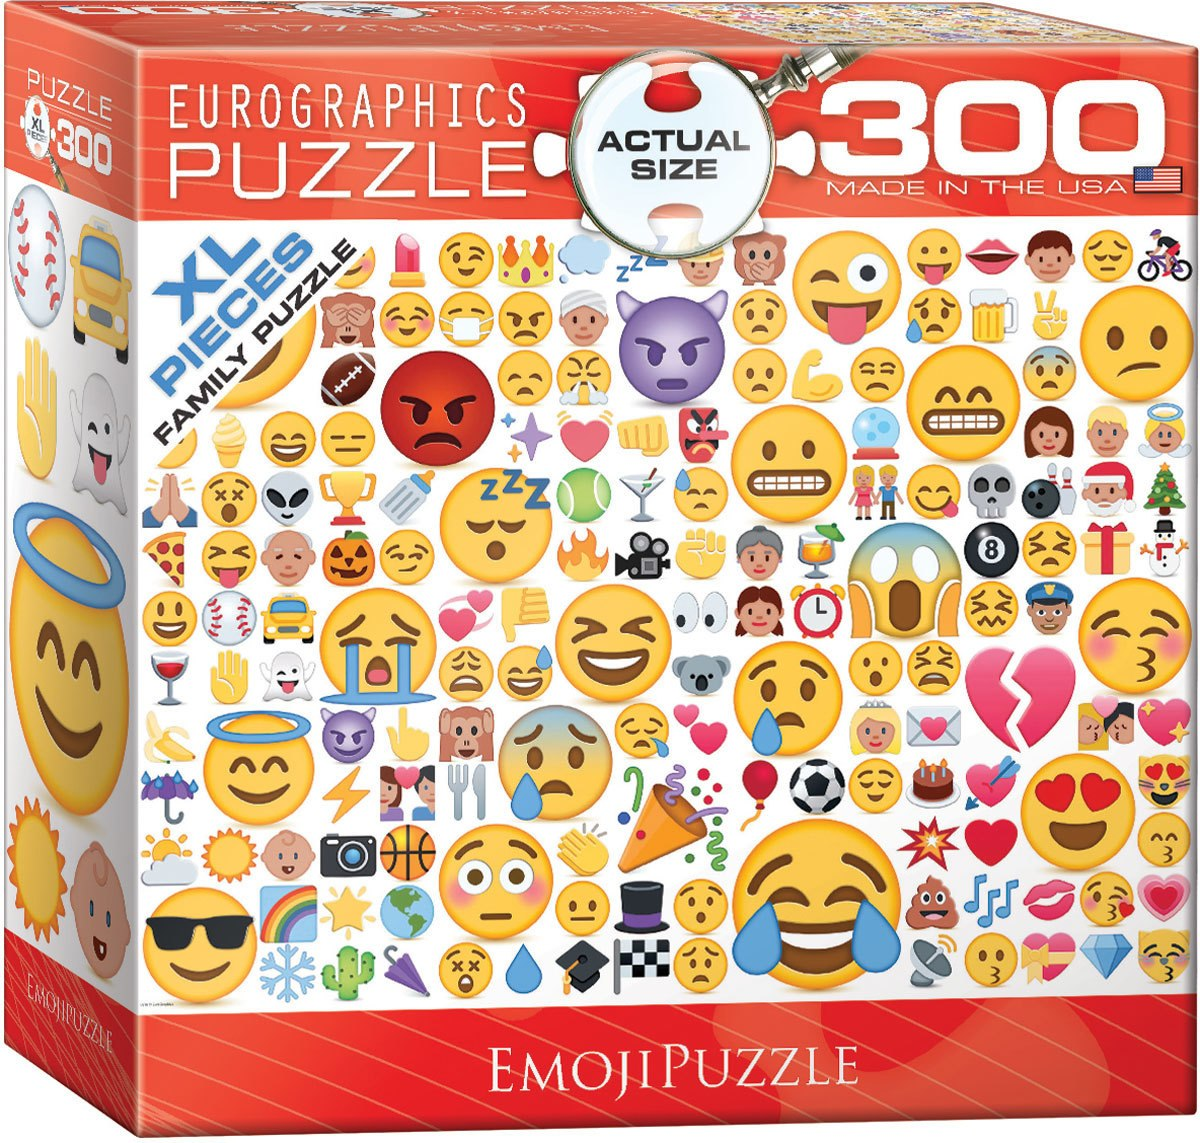 Emojipuzzle - 300pc Jigsaw Puzzle by Eurographics